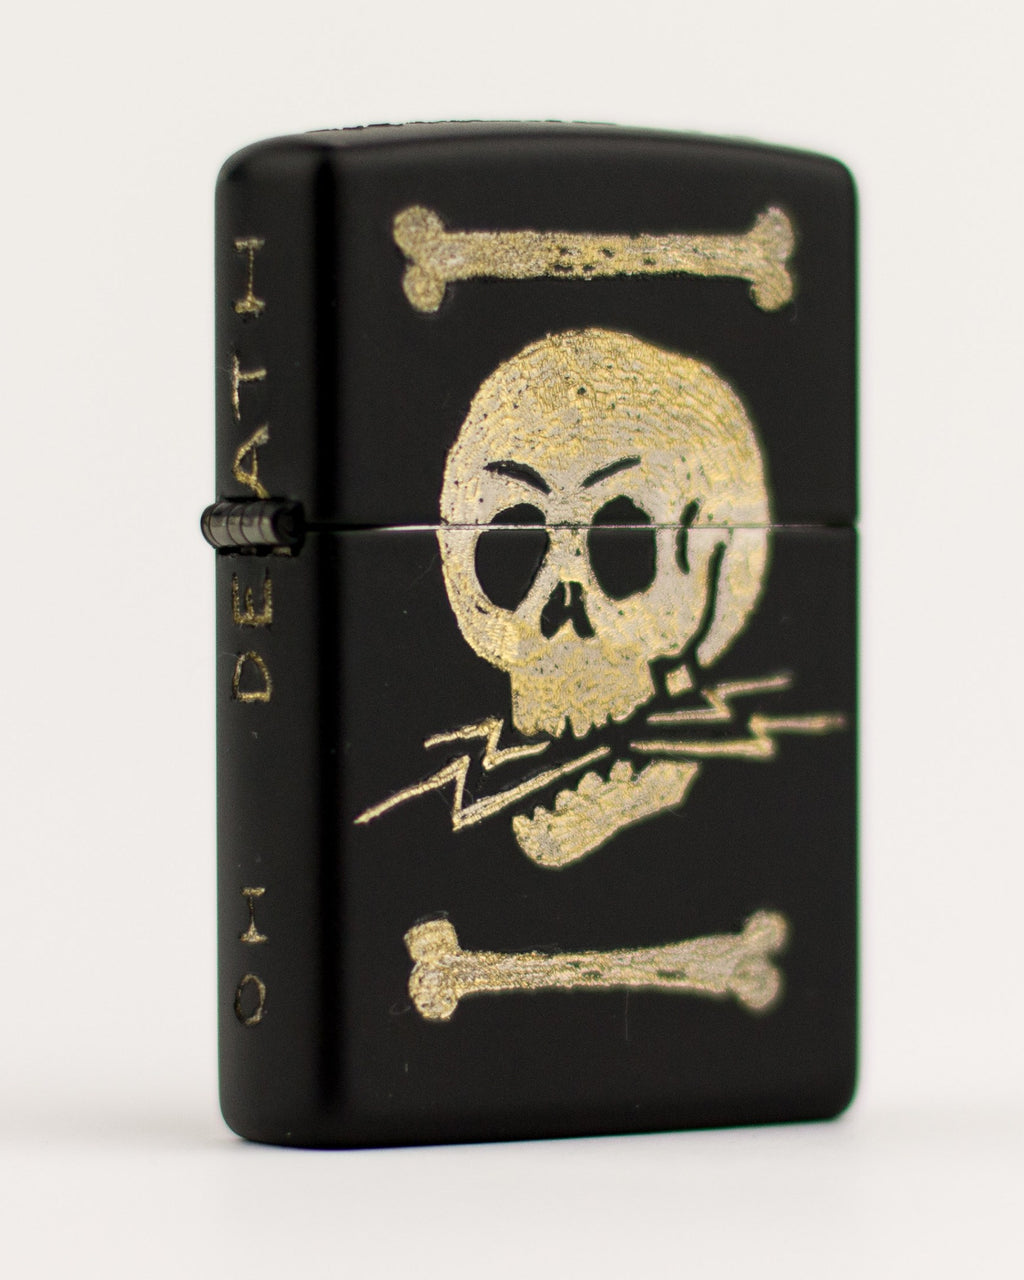 DEATH WHERE IS THY STONG - Engraved Zippo